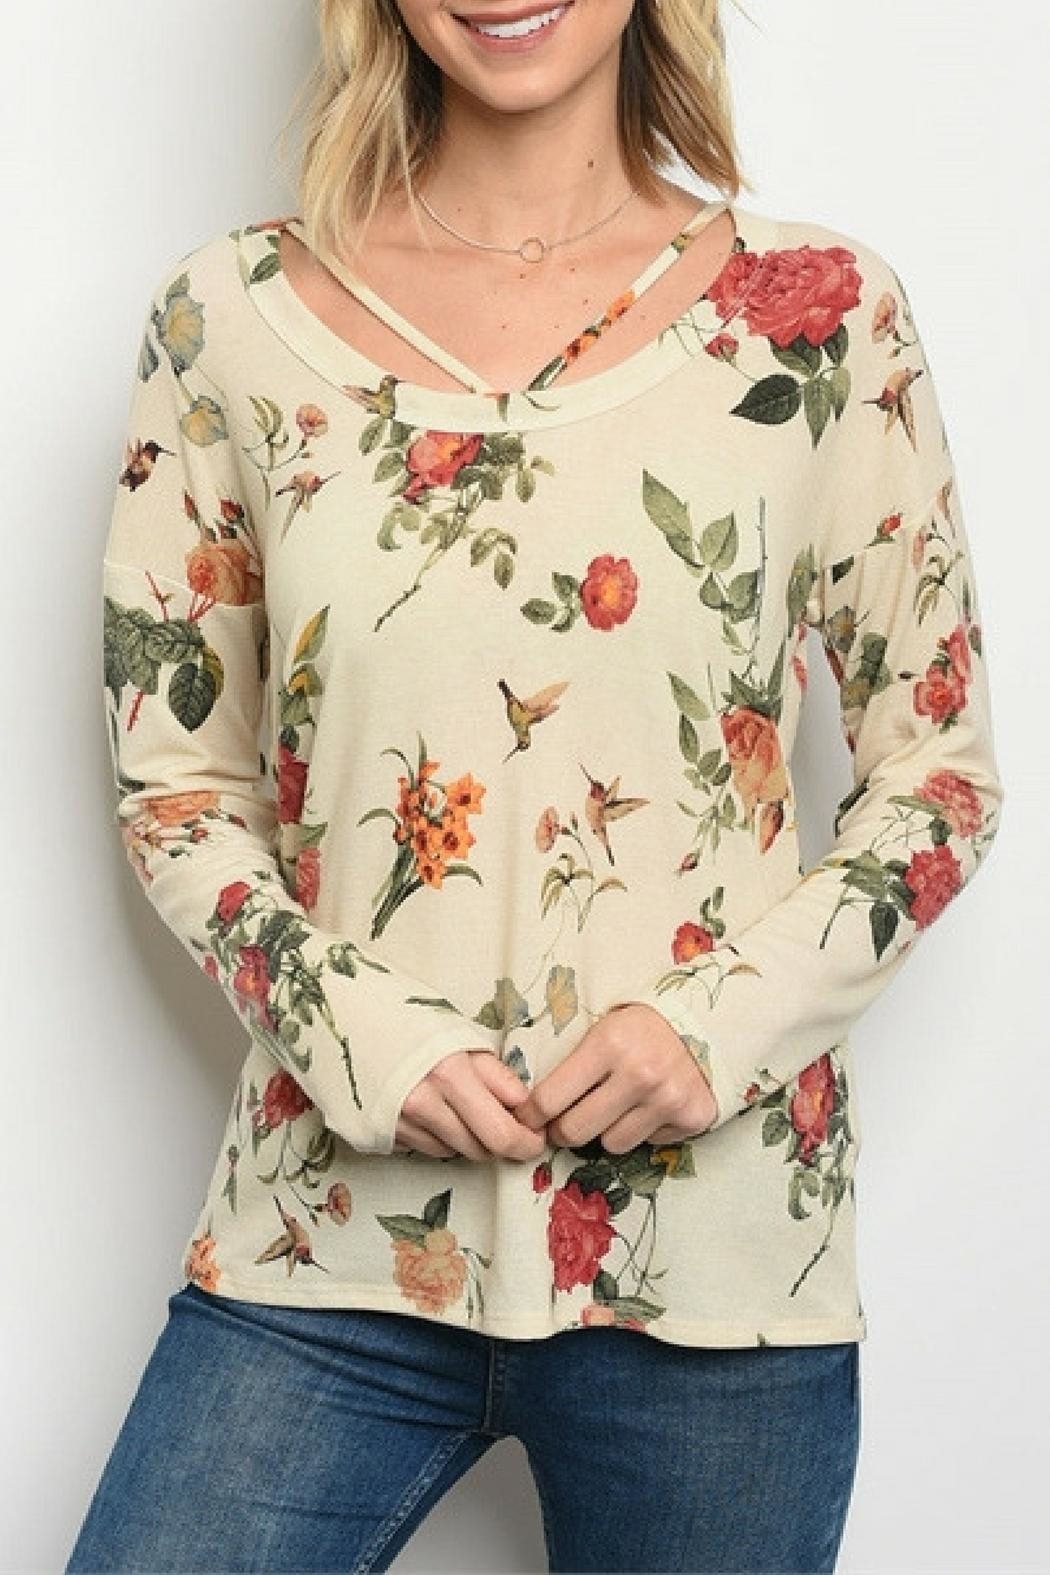 Sweet Claire Cream Floral Top - Main Image